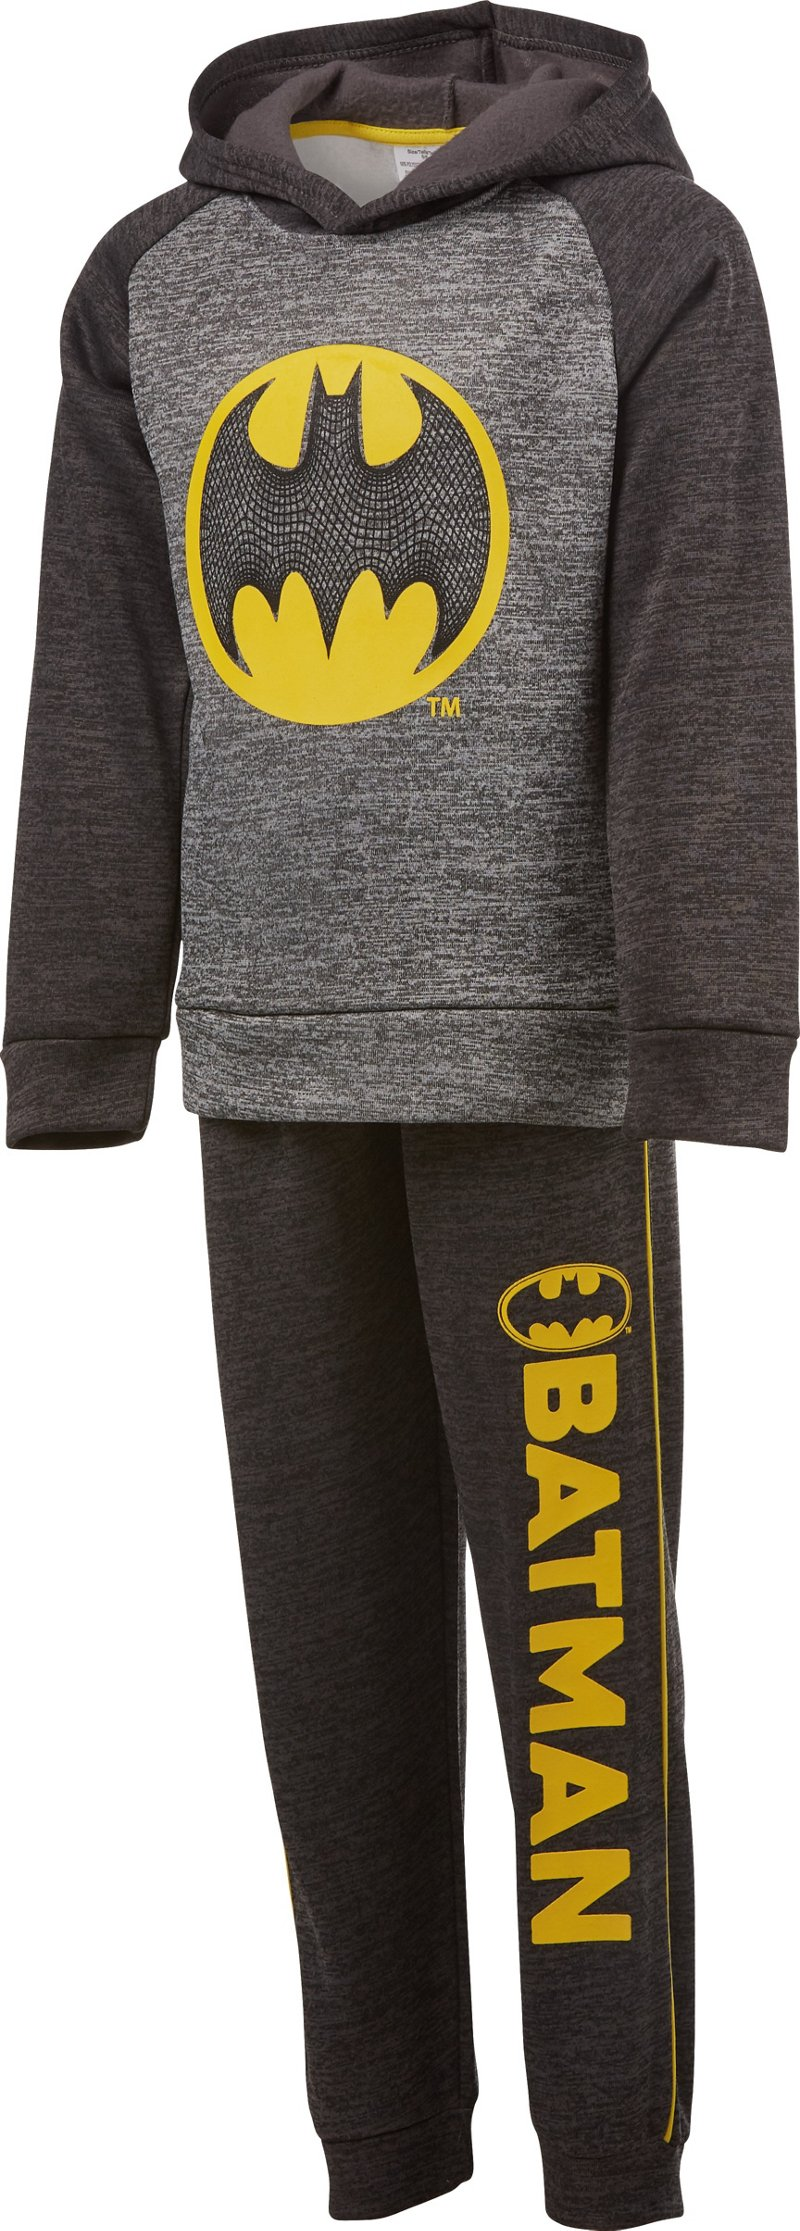 Academy Sports + Outdoors Boys' 4-7 Batman Fleece Set Black - Camo Clothing, Infant And Toddler Camo at Academy Sports thumbnail